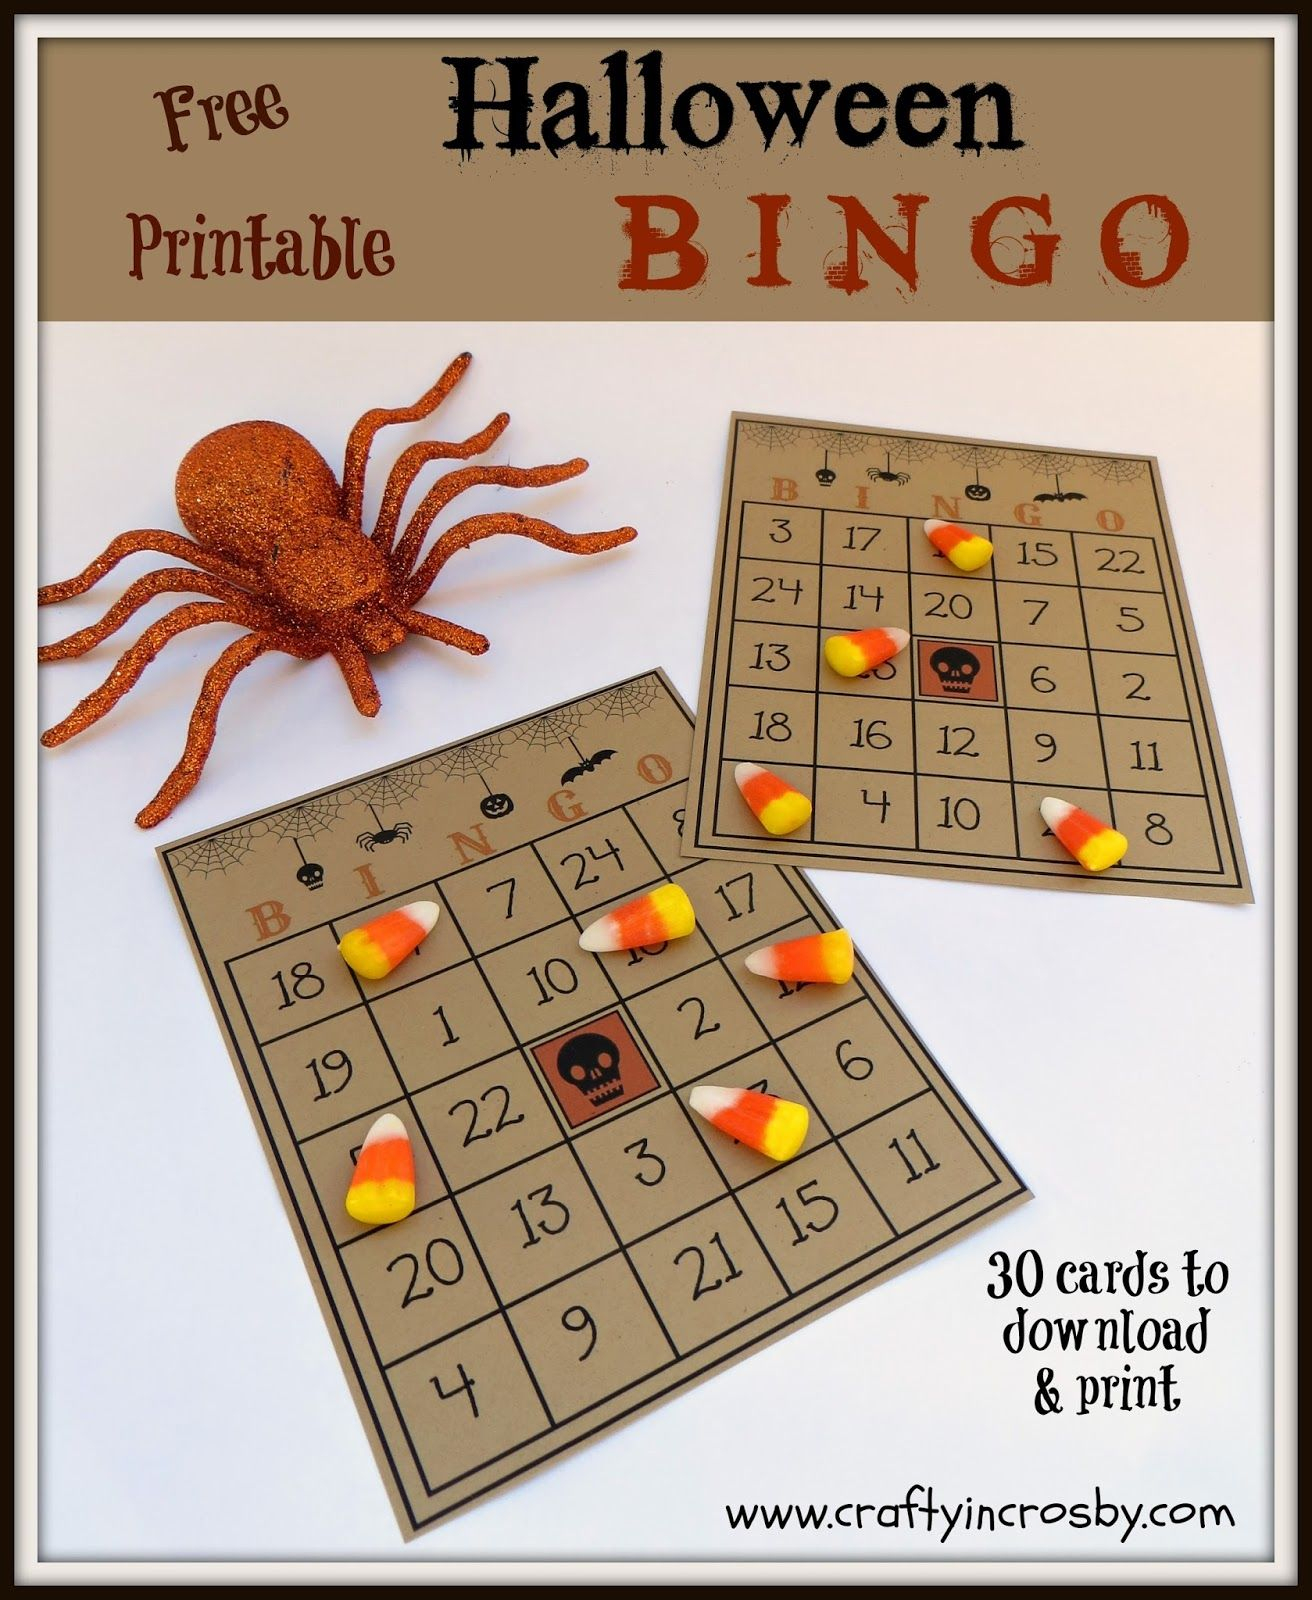 Free Printable Halloween Bingo Game With 30 Cards, Call Sheet And - Free Printable Bingo Cards And Call Sheet